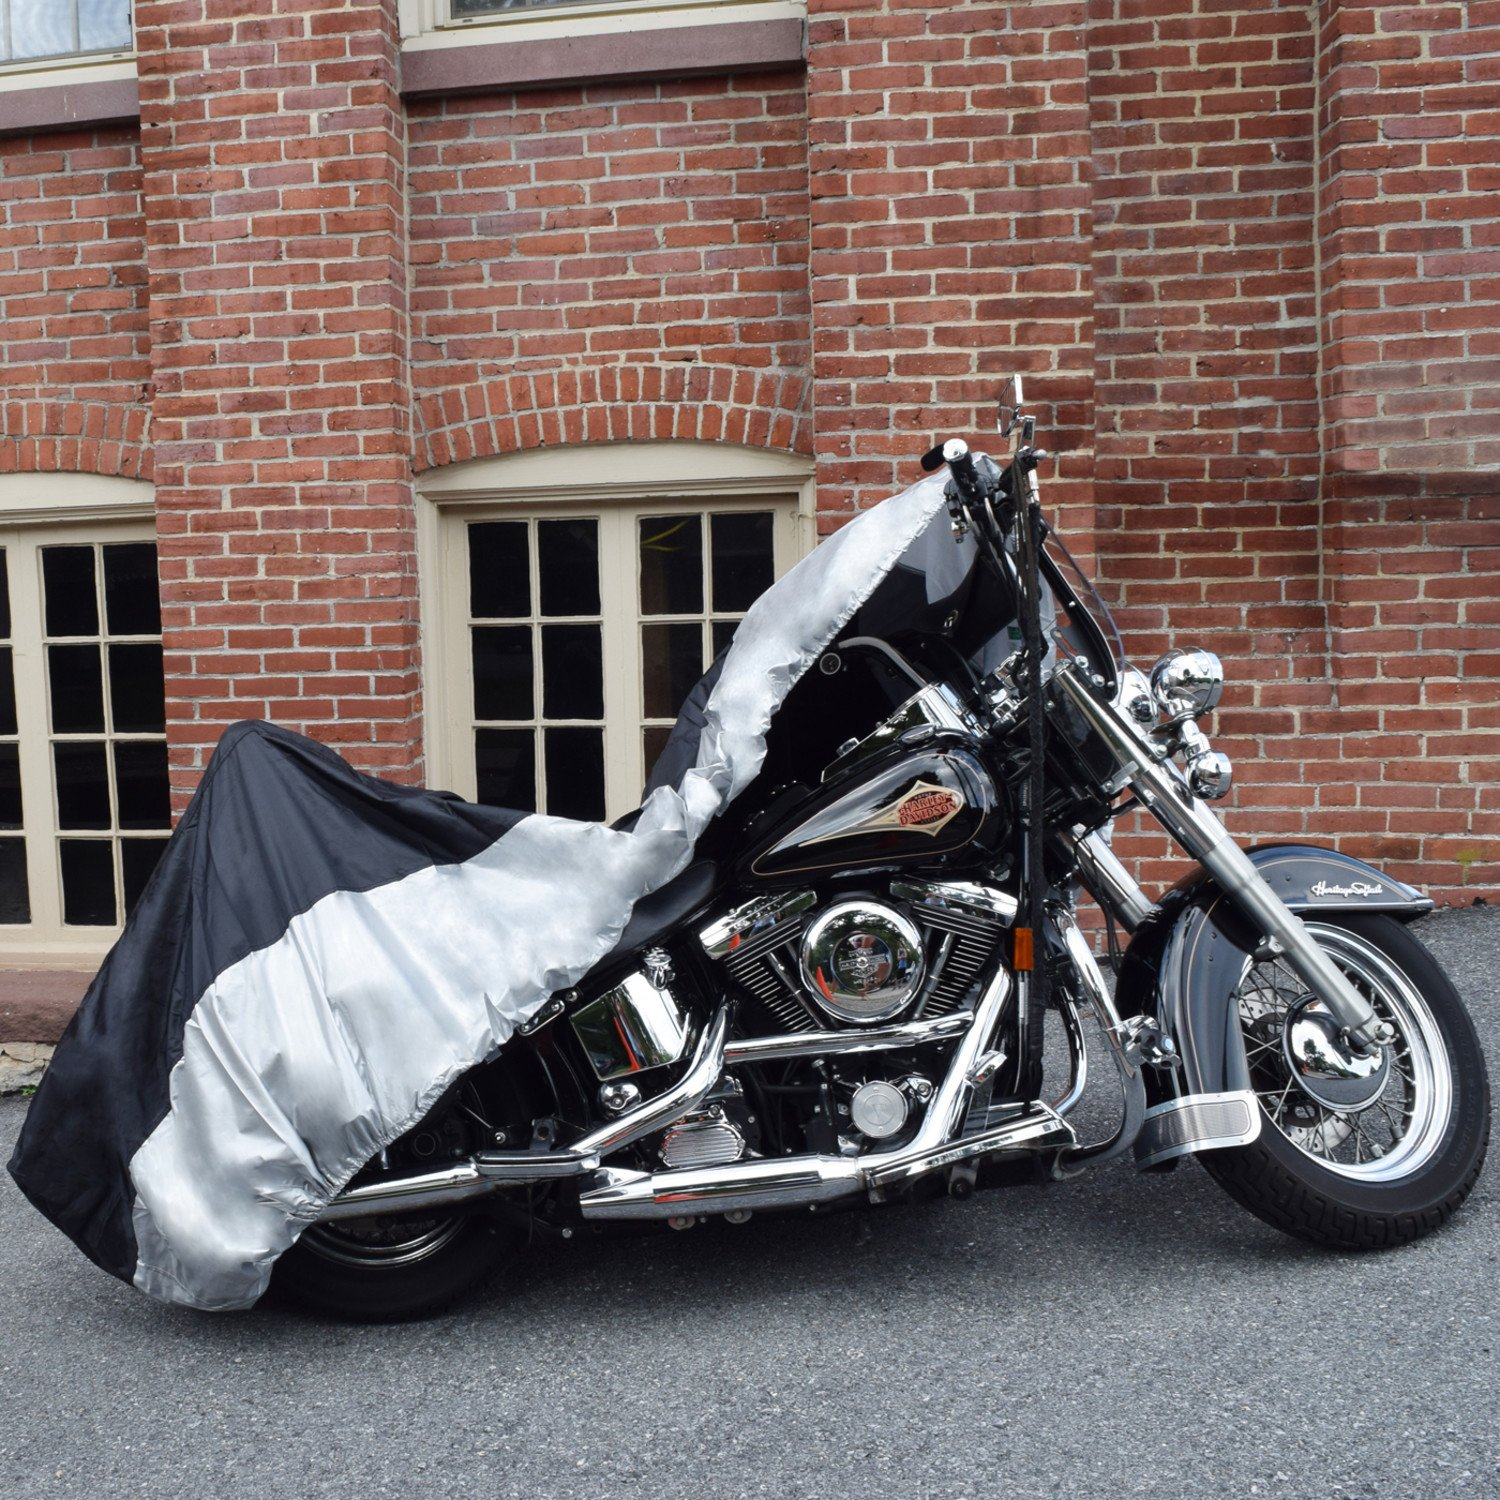 Budge Sportsman Motorcycle Cover Waterproof Fits Bob Honda Shadow Motorcycles Up To 114 Long Black Polyester Automotive